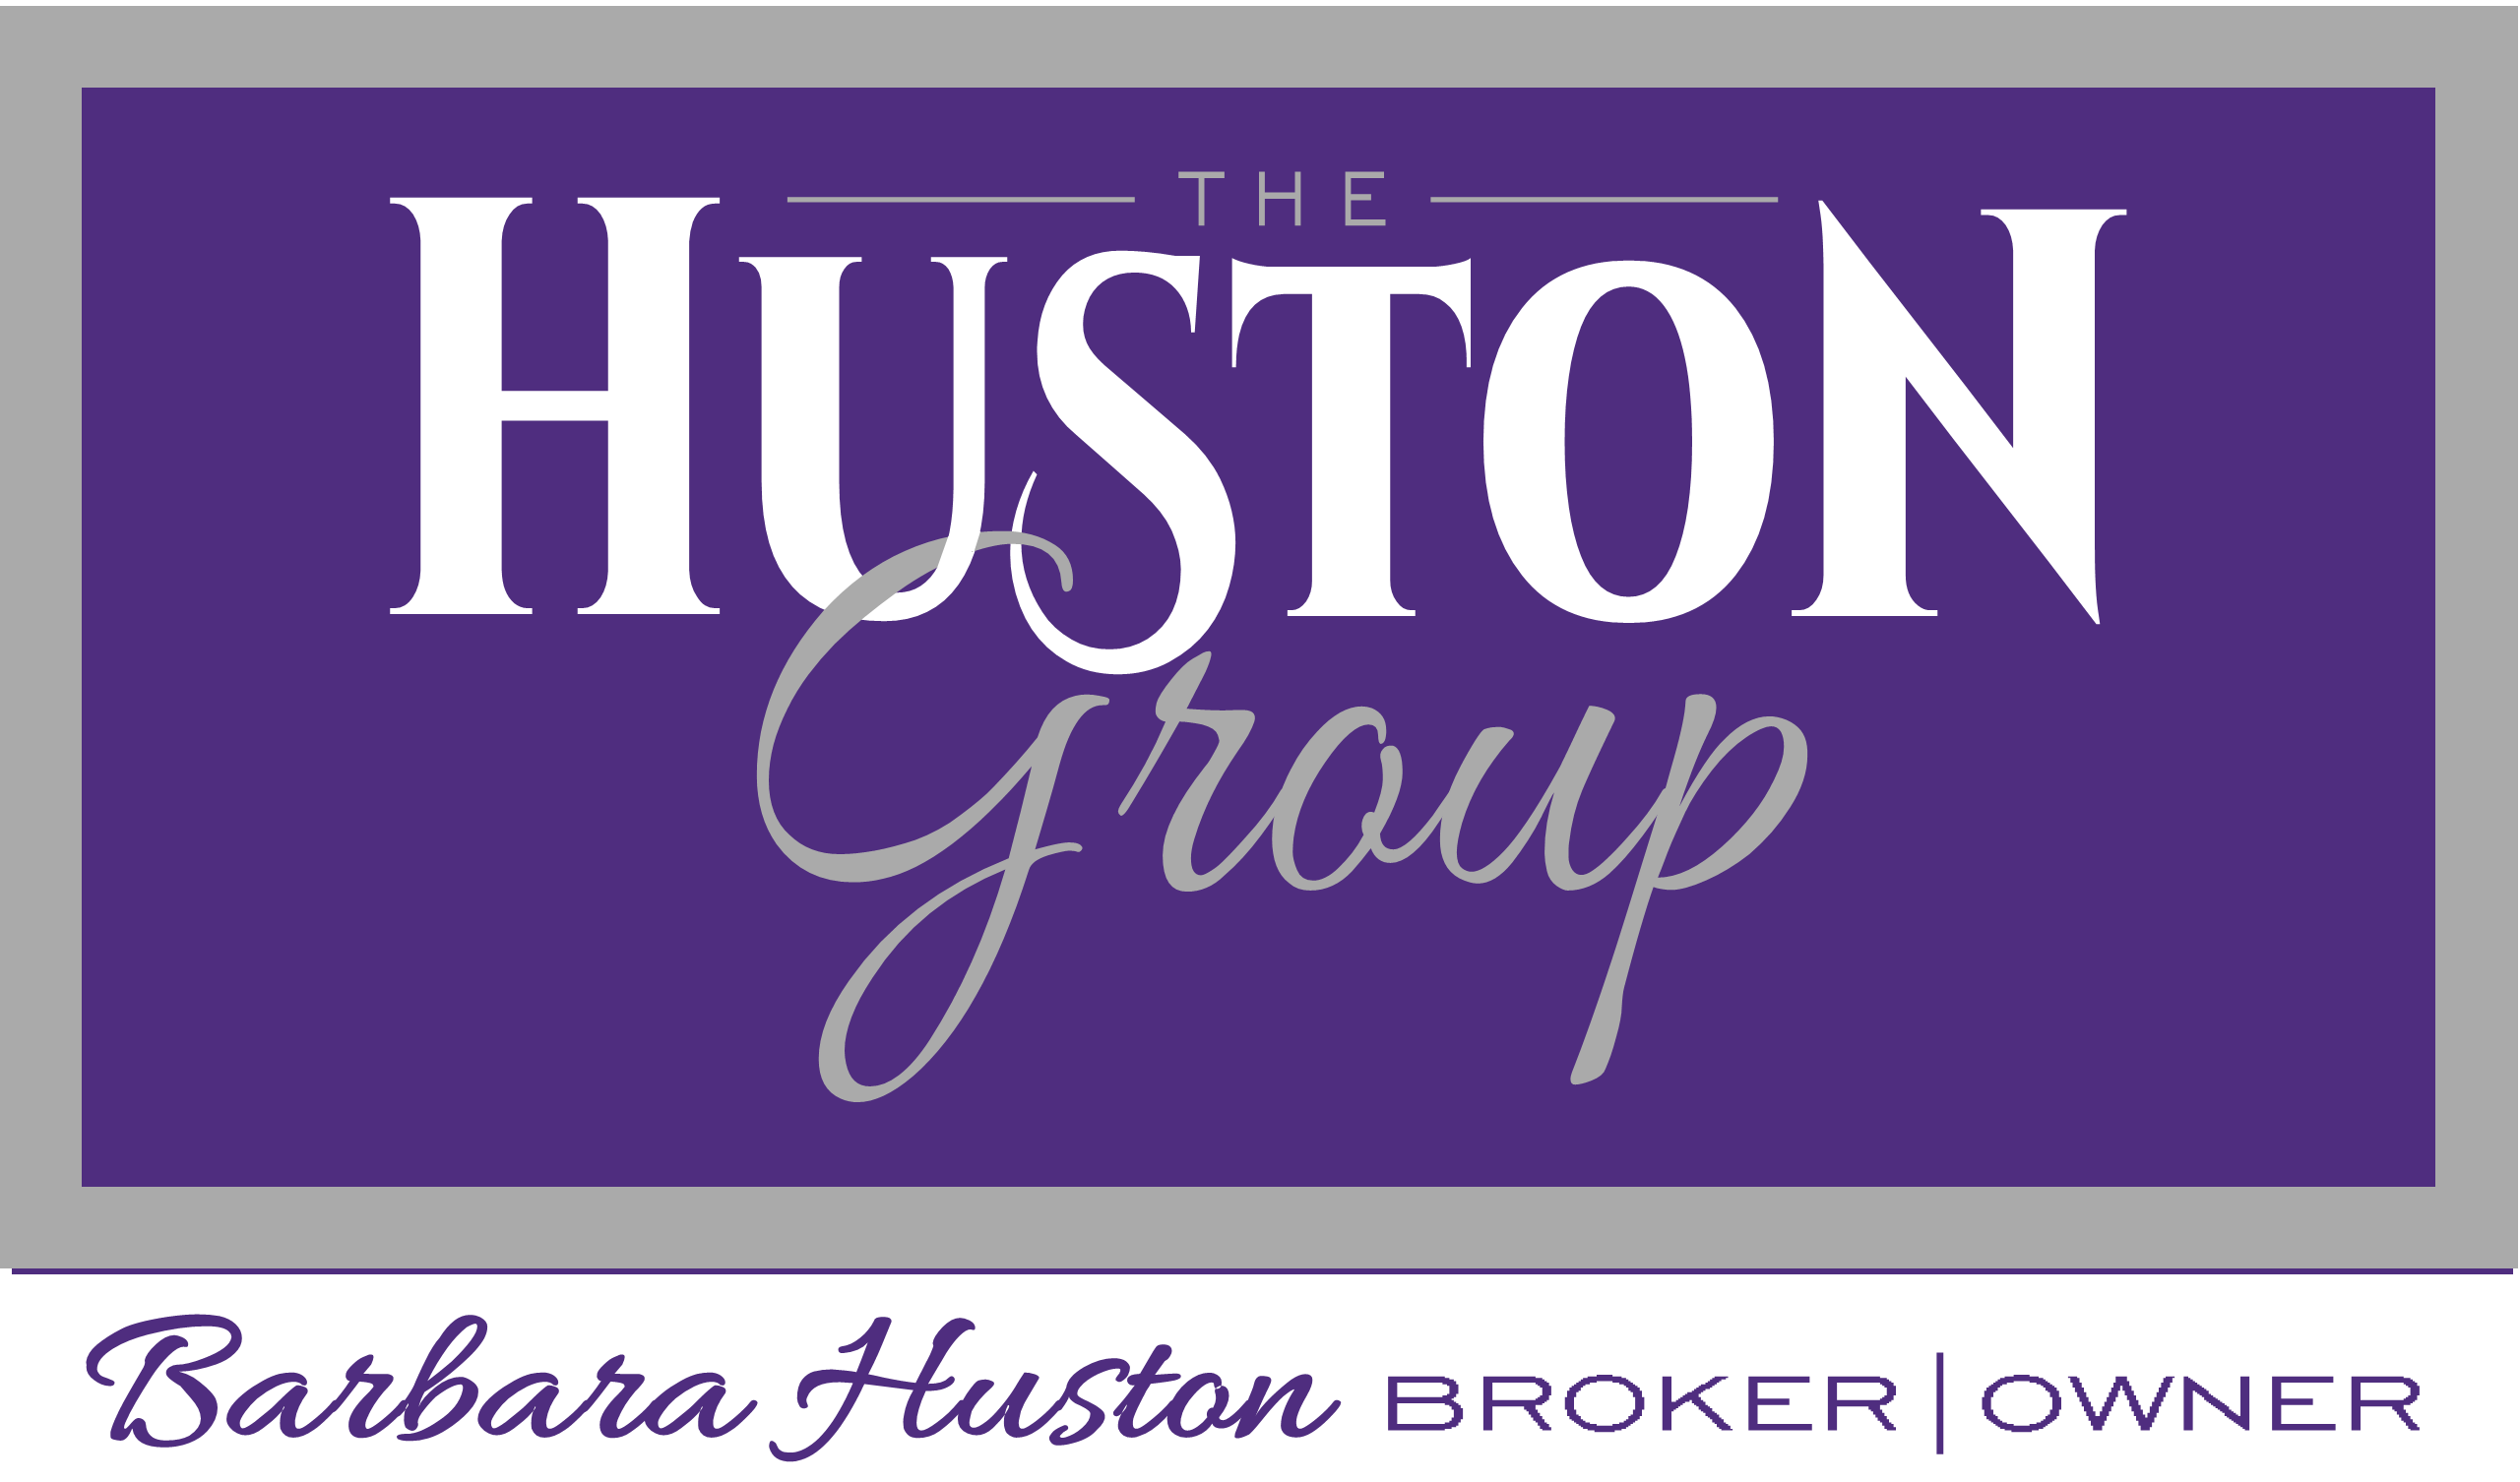 The Huston Group